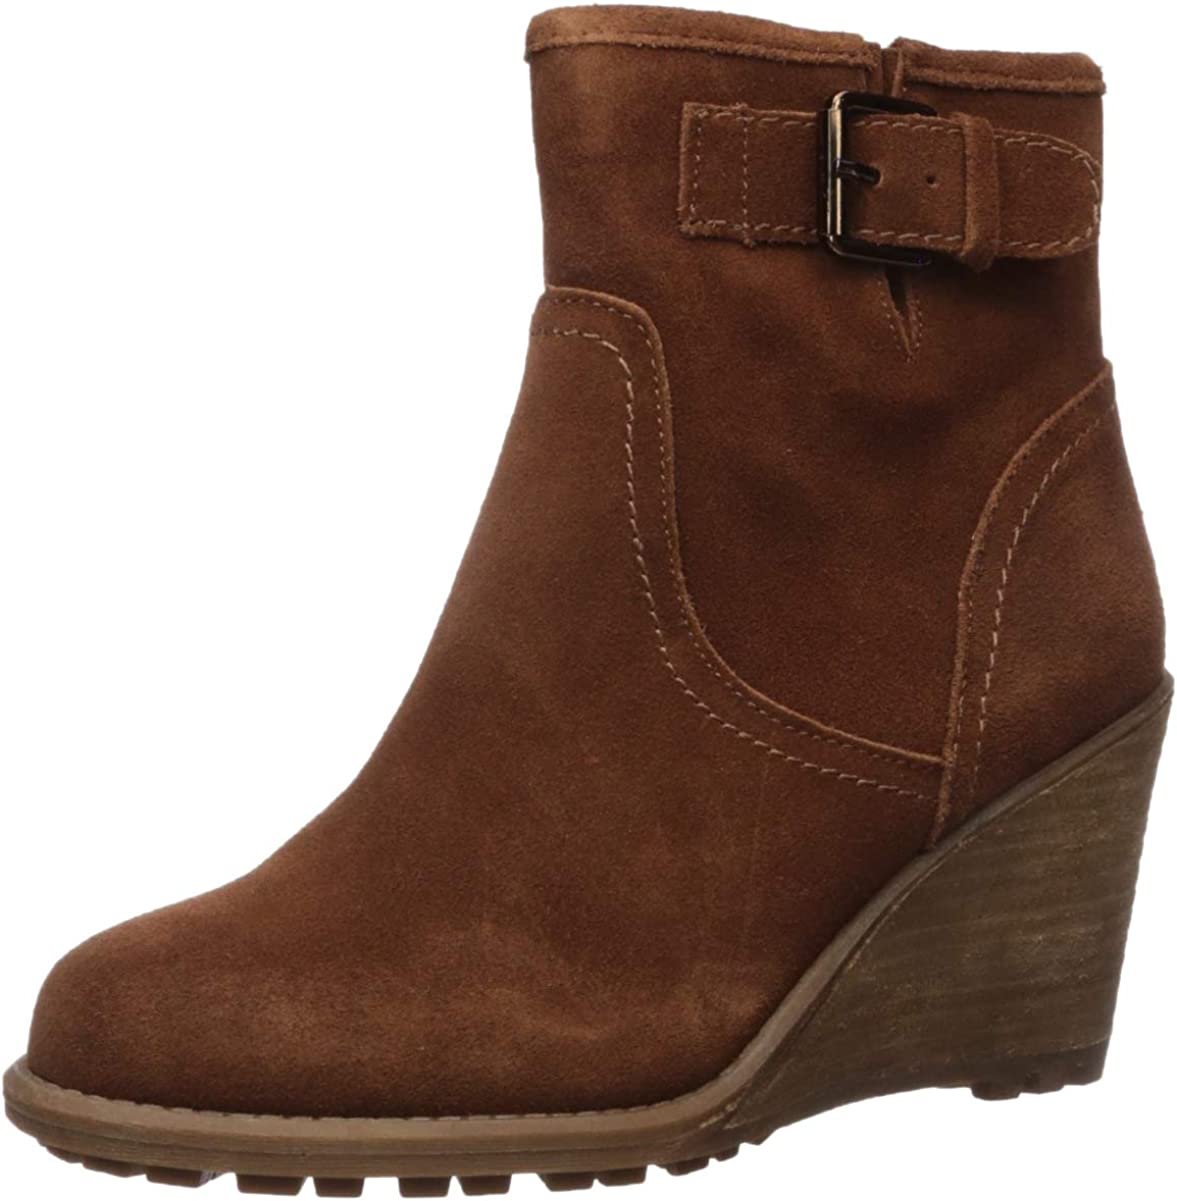 Sale special price Carlos by Santana Women's Inexpensive Ankle Trace Boot